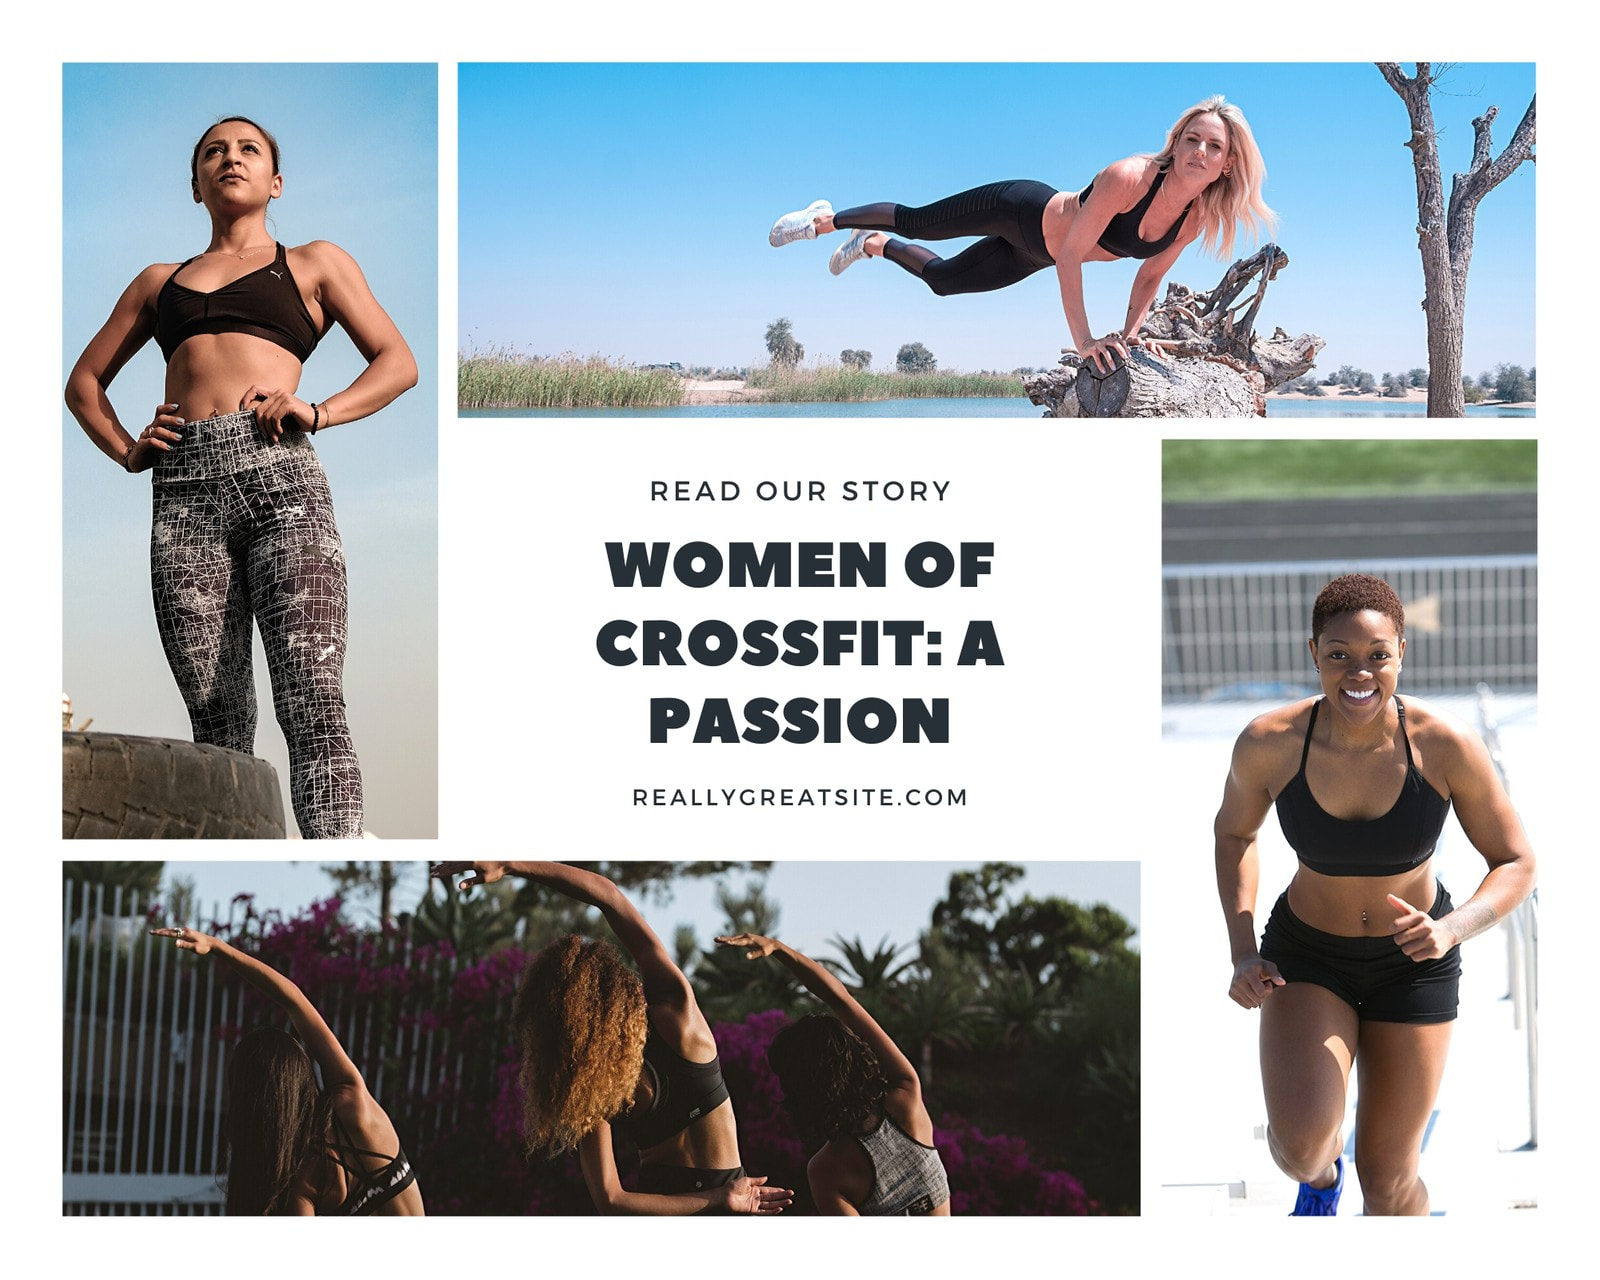 Women's CrossFit Sports Photo Collage